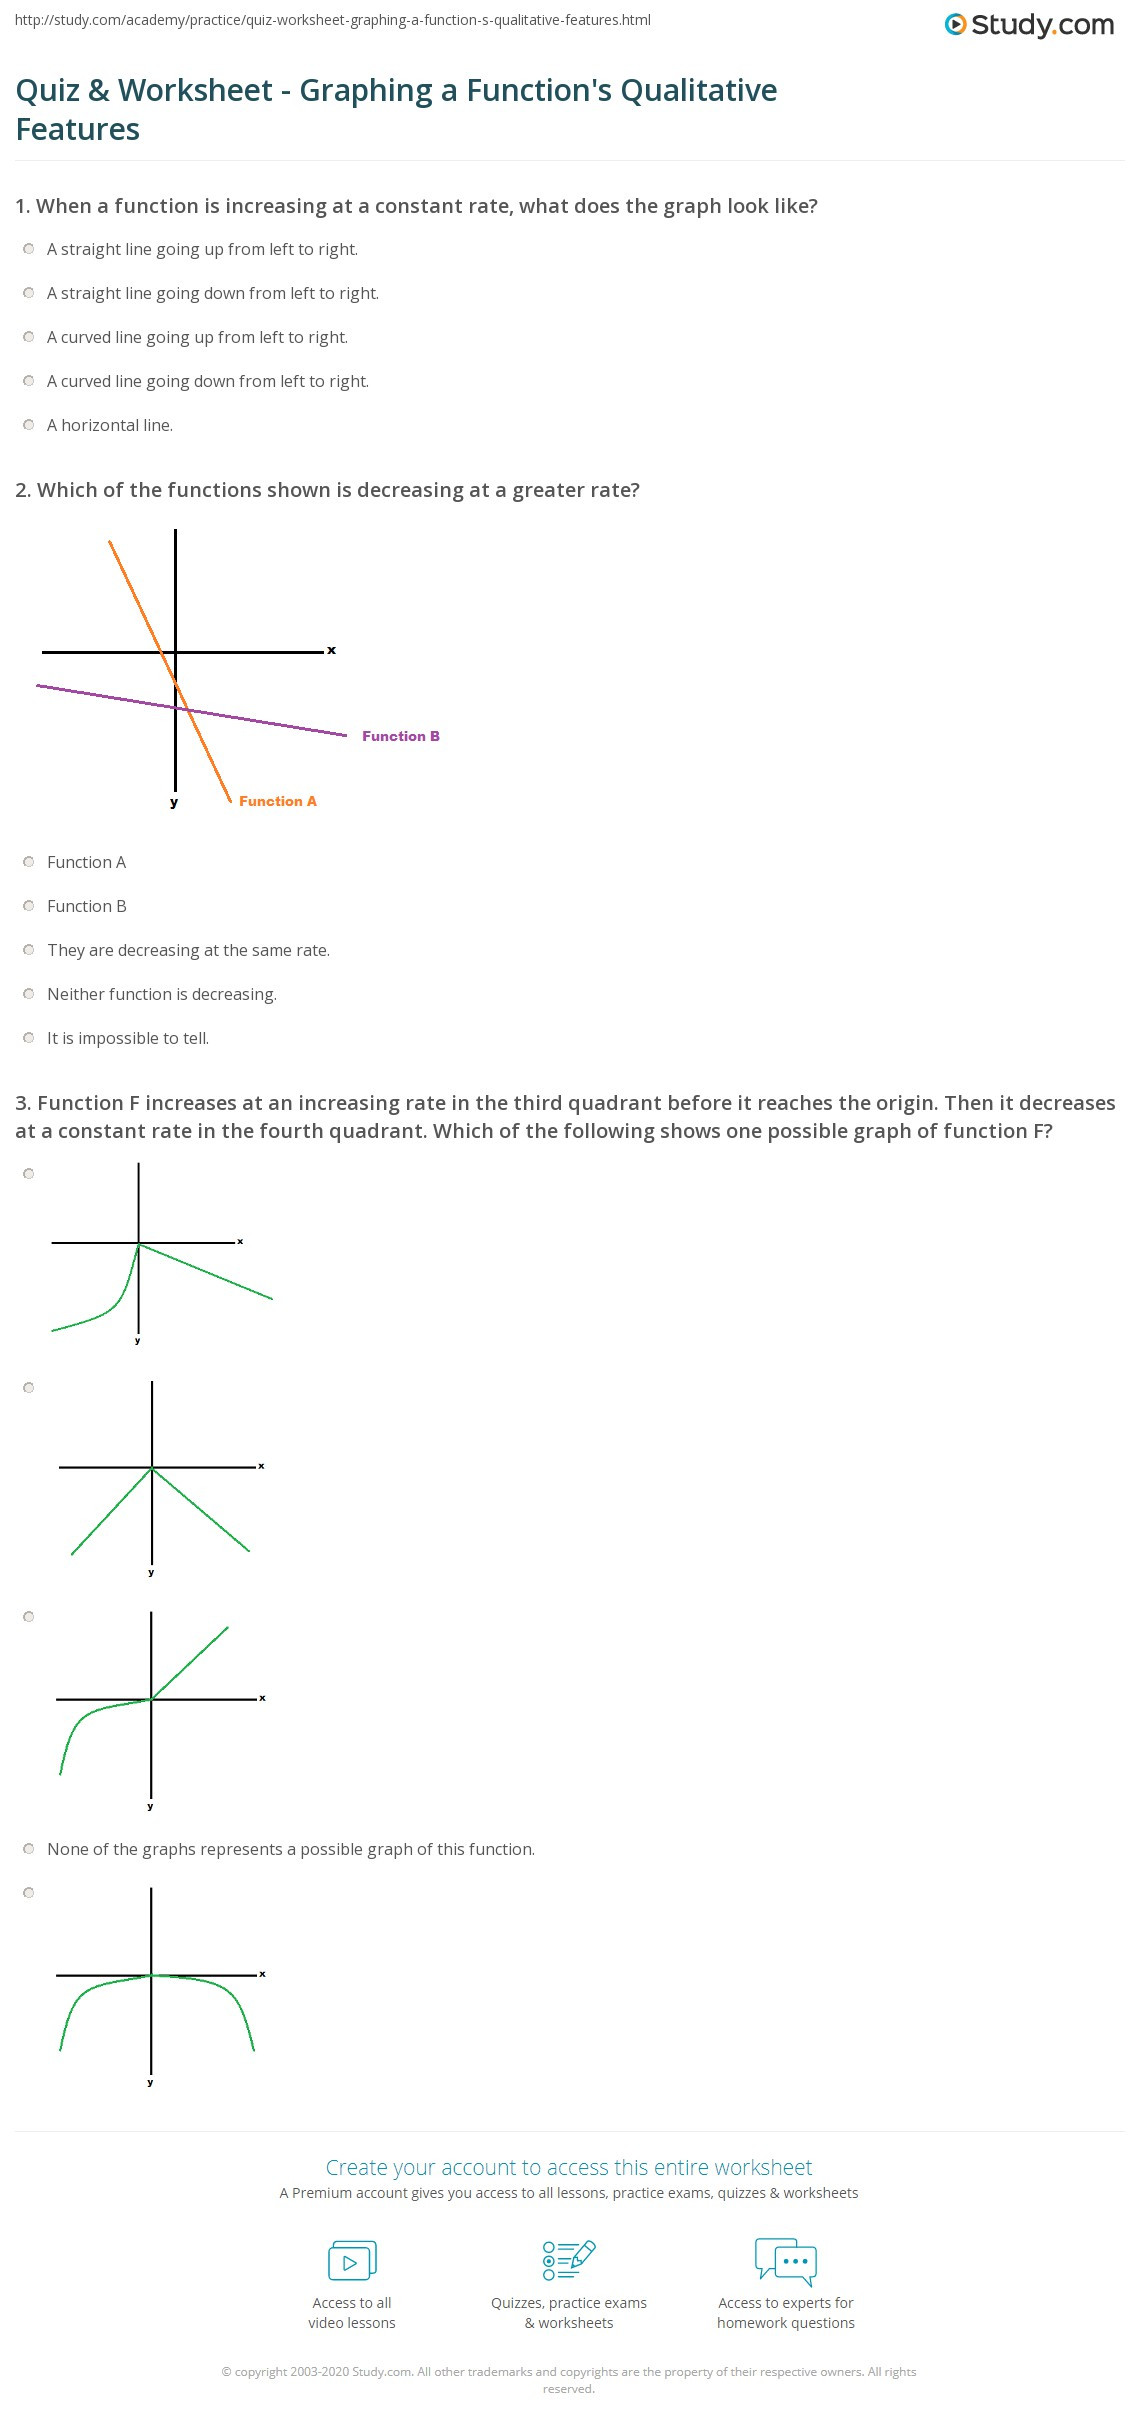 Graphing Worksheets High School Science Quiz & Worksheet Graphing A Function S Qualitative